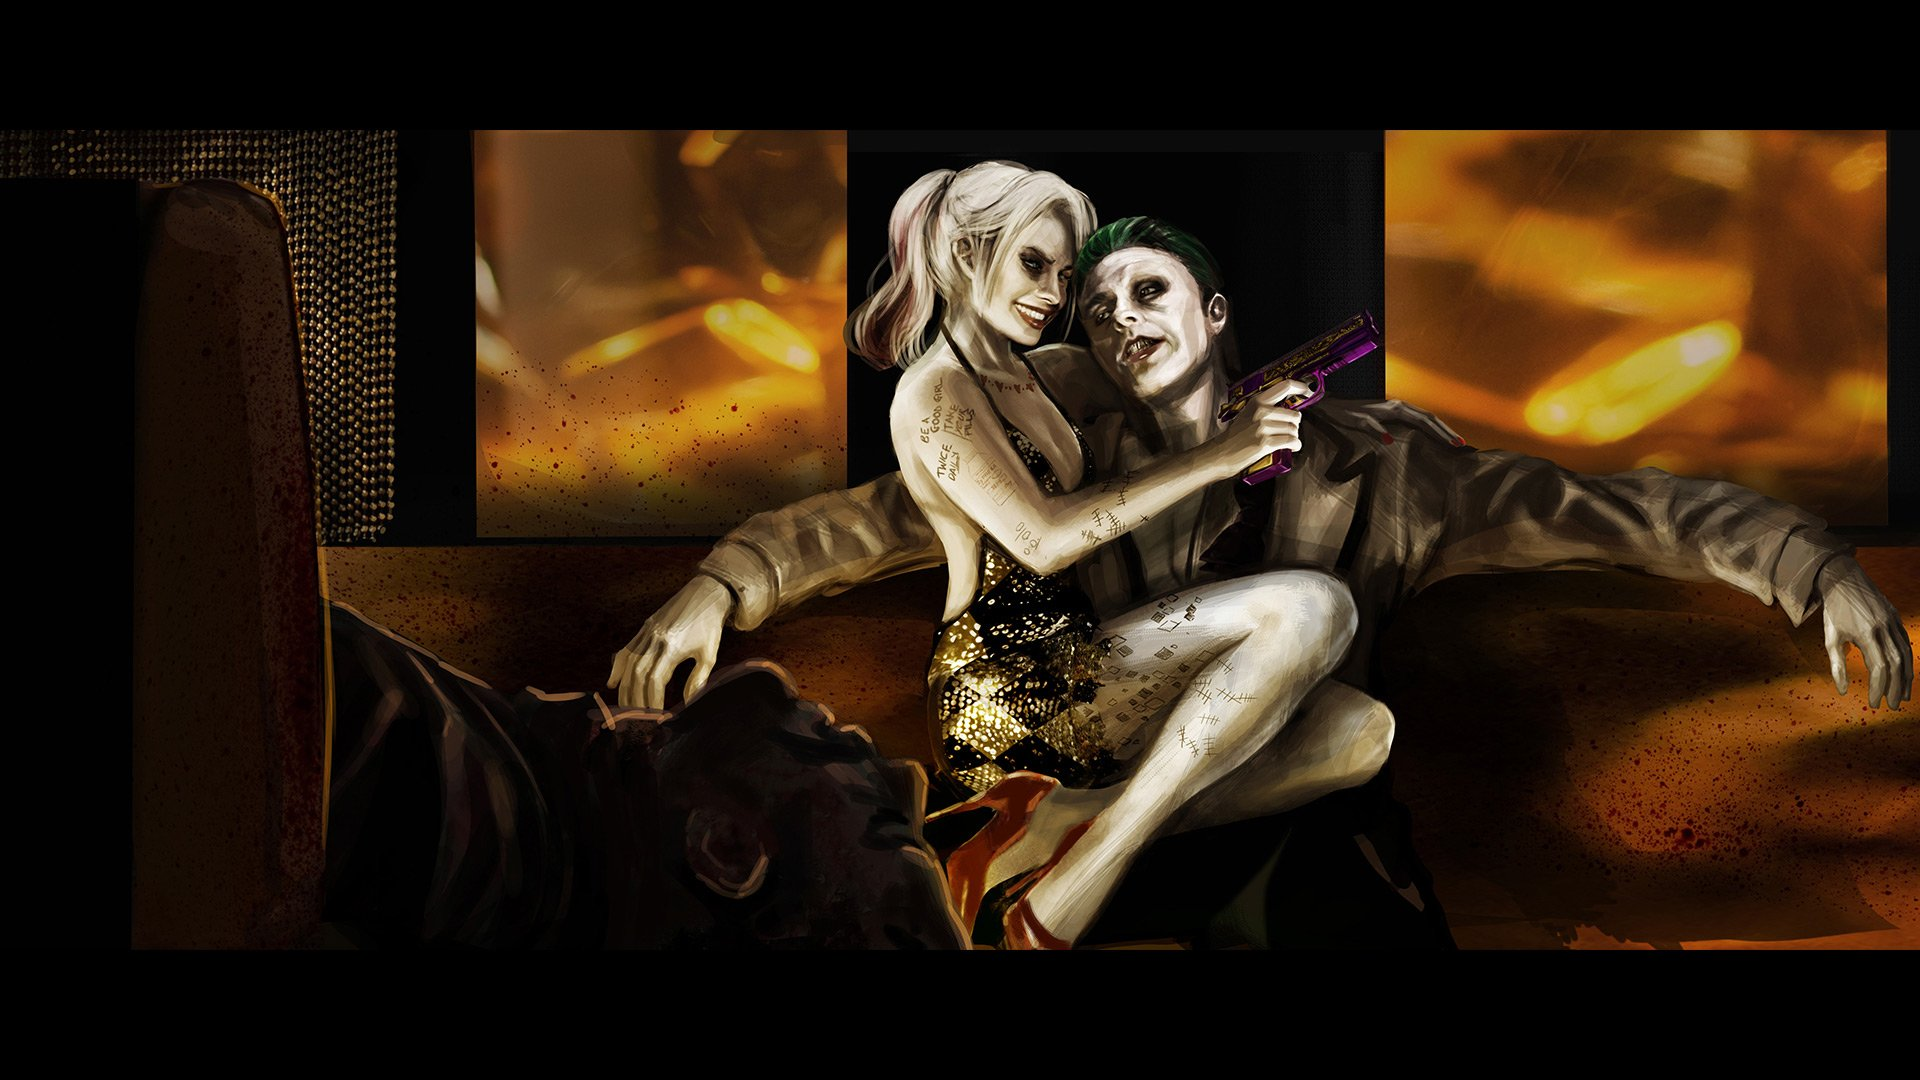 'Suicide Squad' Concept Art ~ Harley Quinn and The Joker